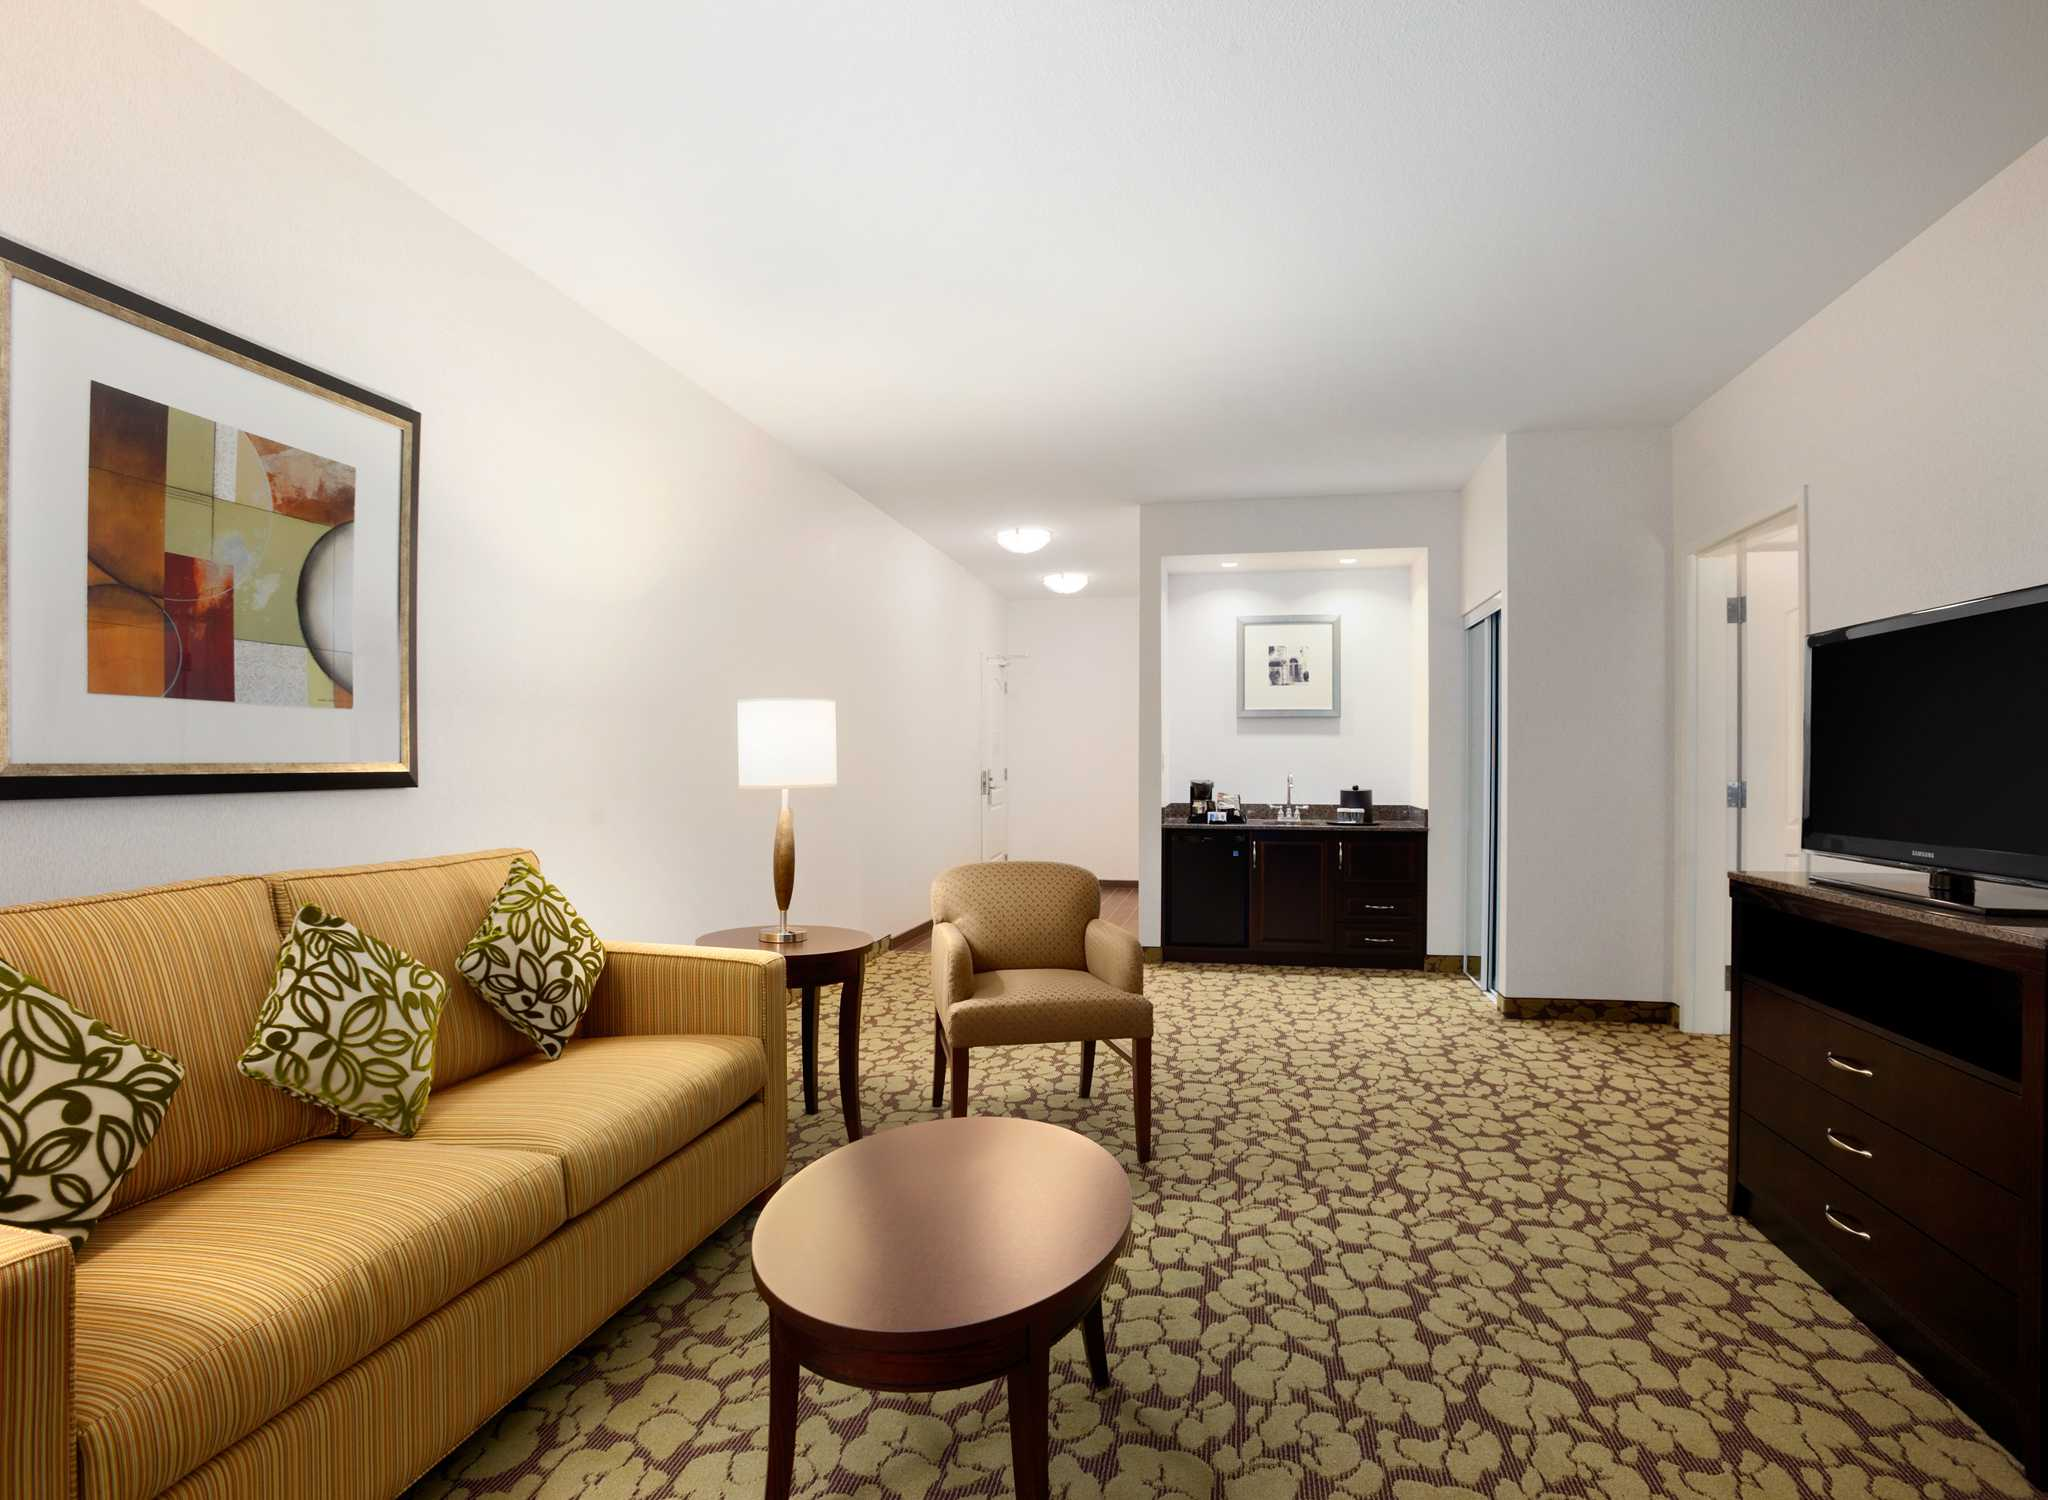 Hilton Garden Inn Kitchener Hilton Hotels Resorts Canada